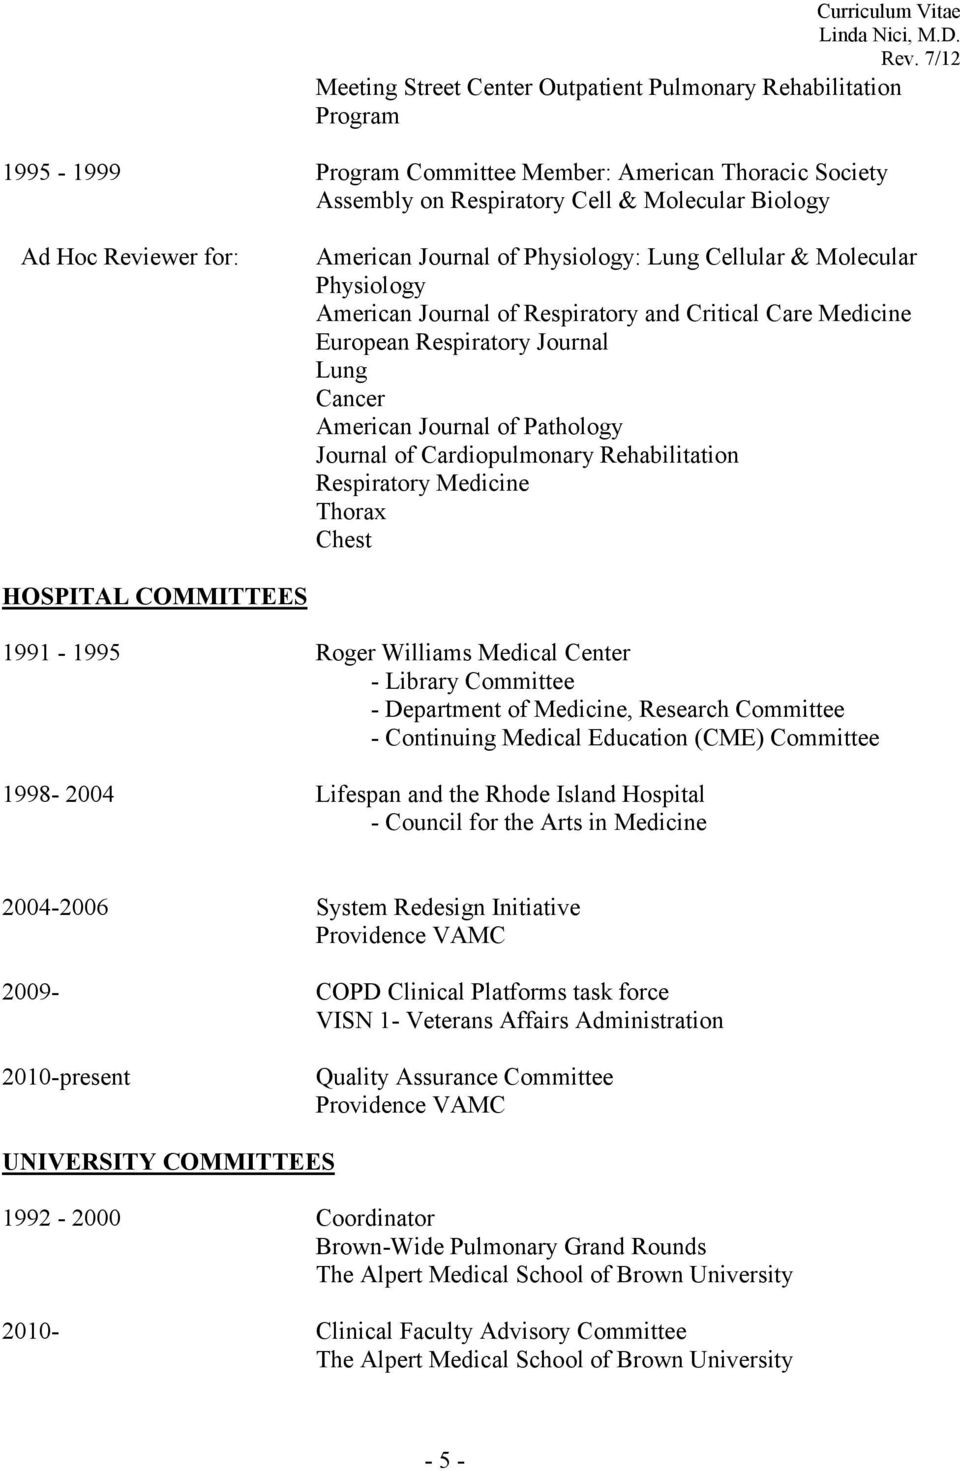 Journal of Cardiopulmonary Rehabilitation Respiratory Medicine Thorax Chest HOSPITAL COMMITTEES 1991-1995 Roger Williams Medical Center - Library Committee - Department of Medicine, Research